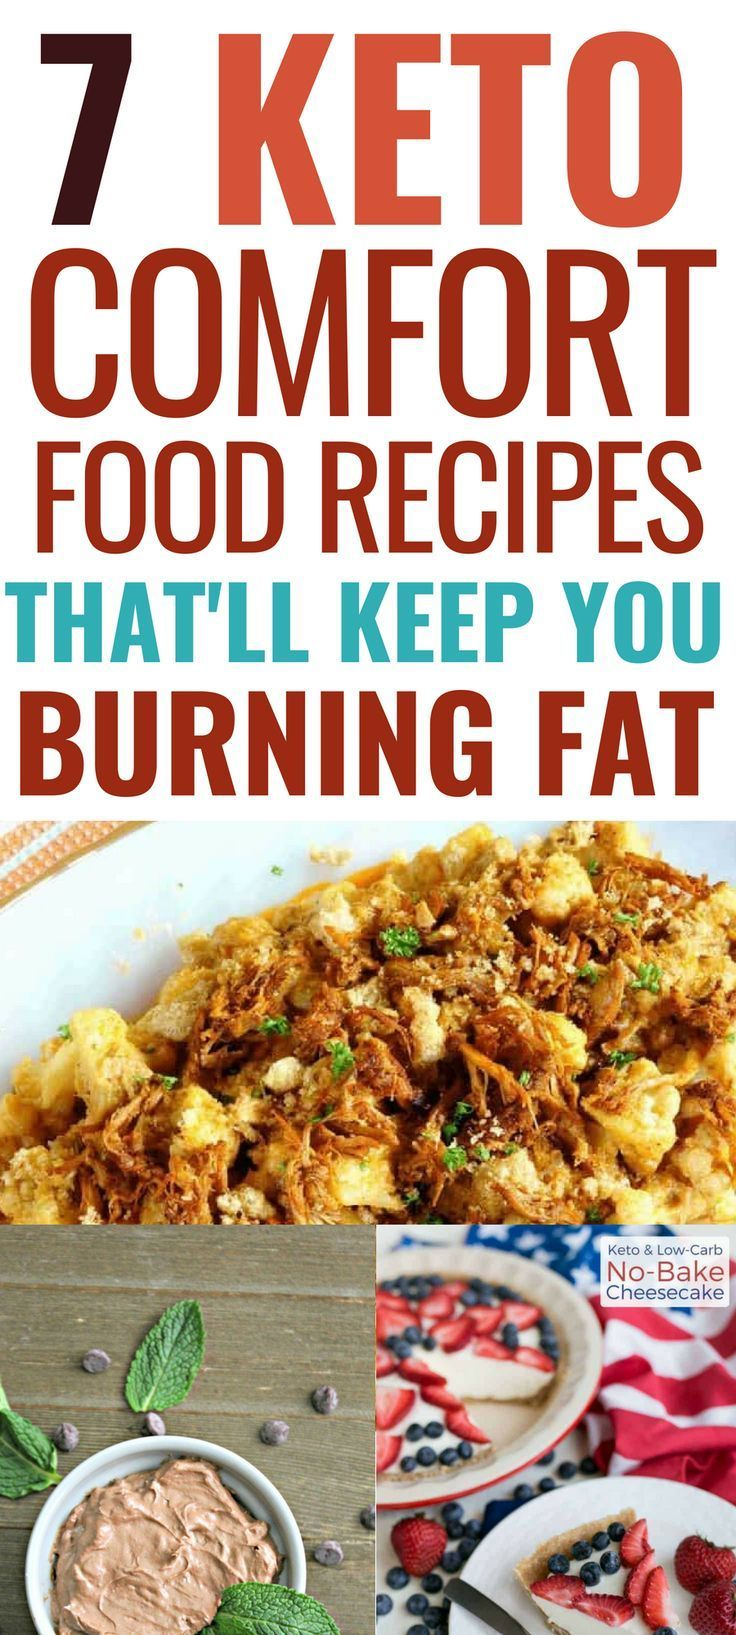 7 Keto Comfort Food Recipes That Taste So Good images